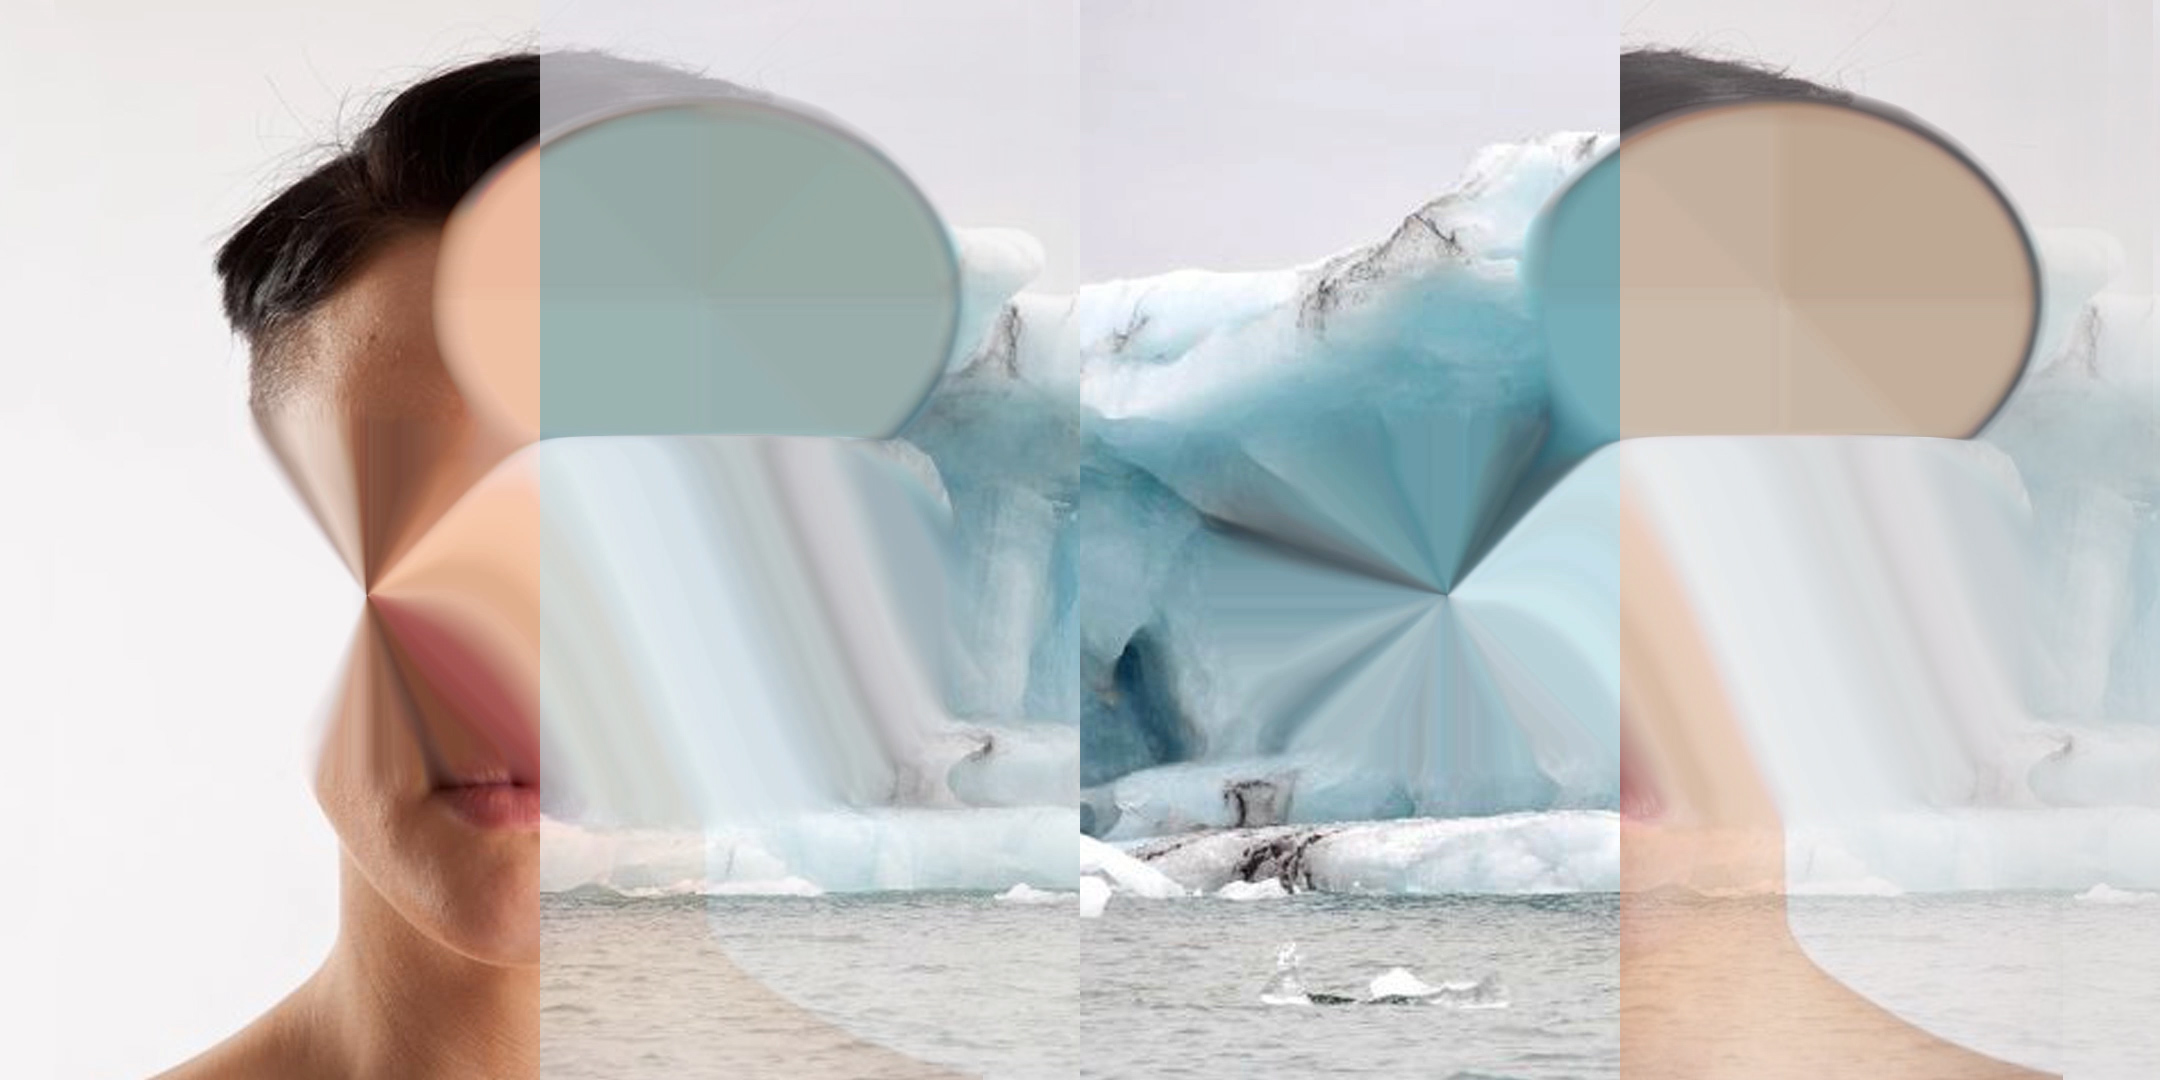 Video still from Becoming Illegible (expanding) showing a woman's face that has been blown up until it becomes a flat circle, and a glacier image treated the same way.